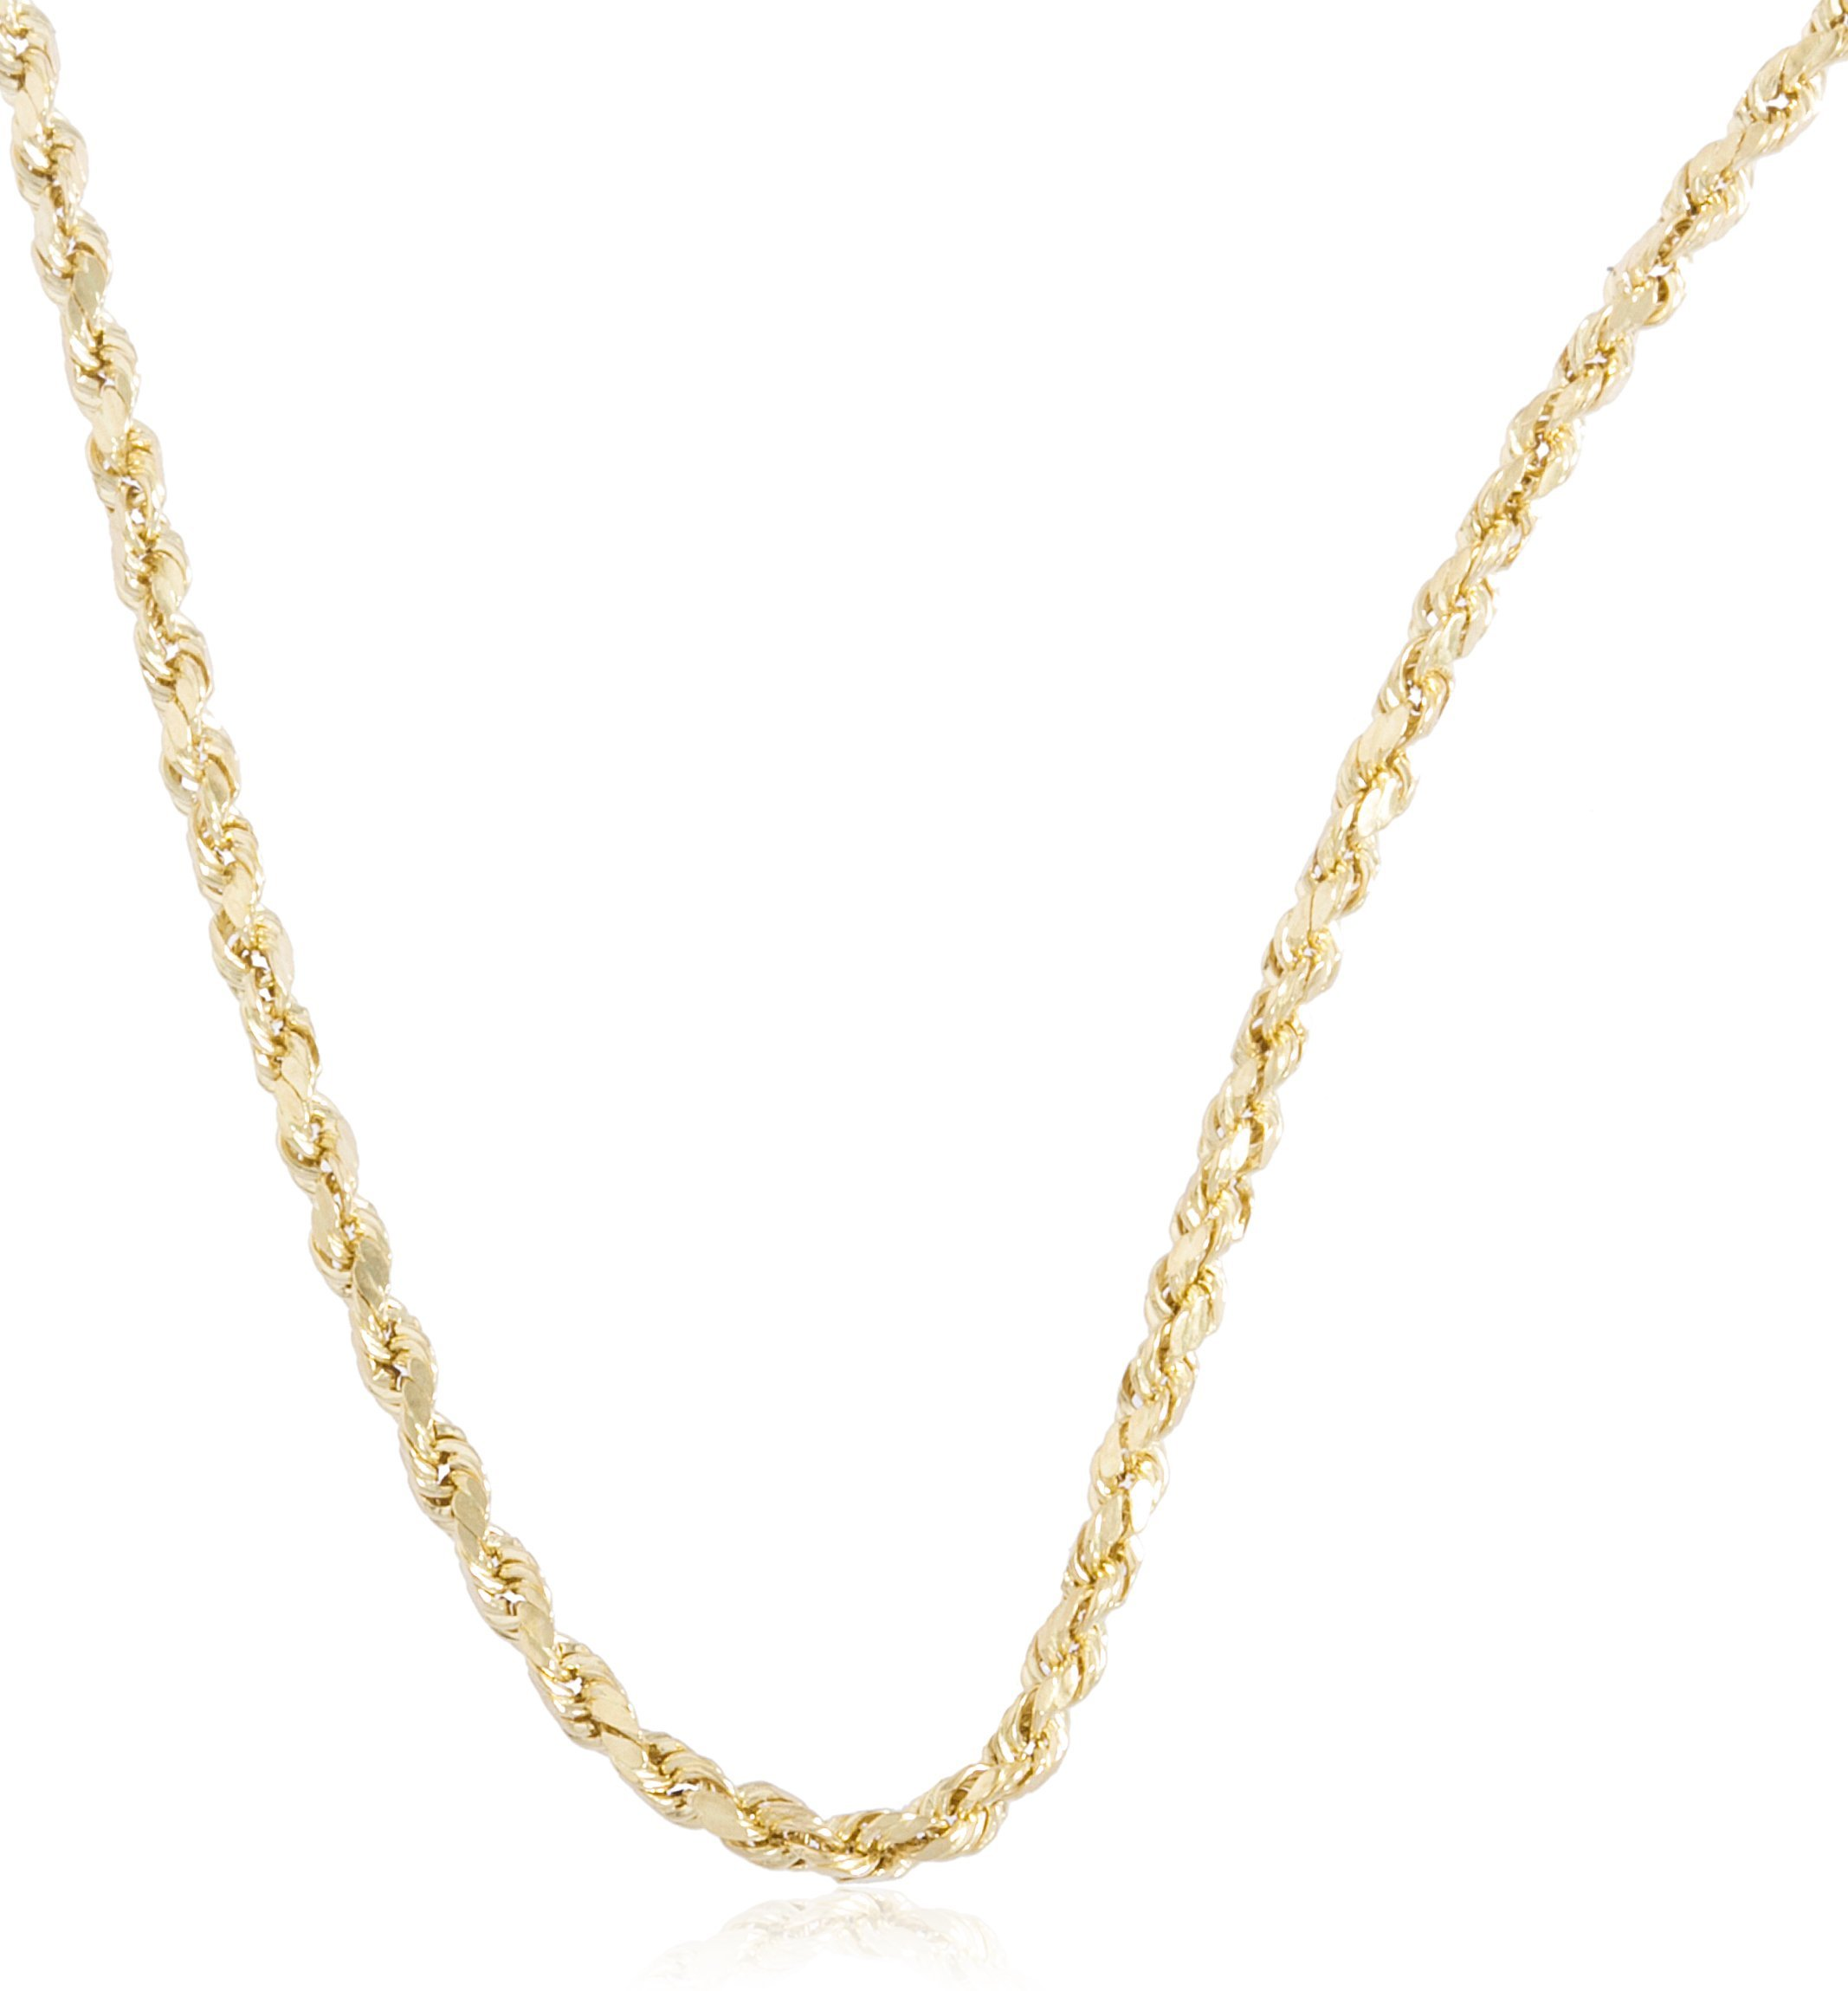 10K Yellow Gold 2mm D-cut Rope Chain Necklace - 16'' 18'' & 20'' Available (16 I..